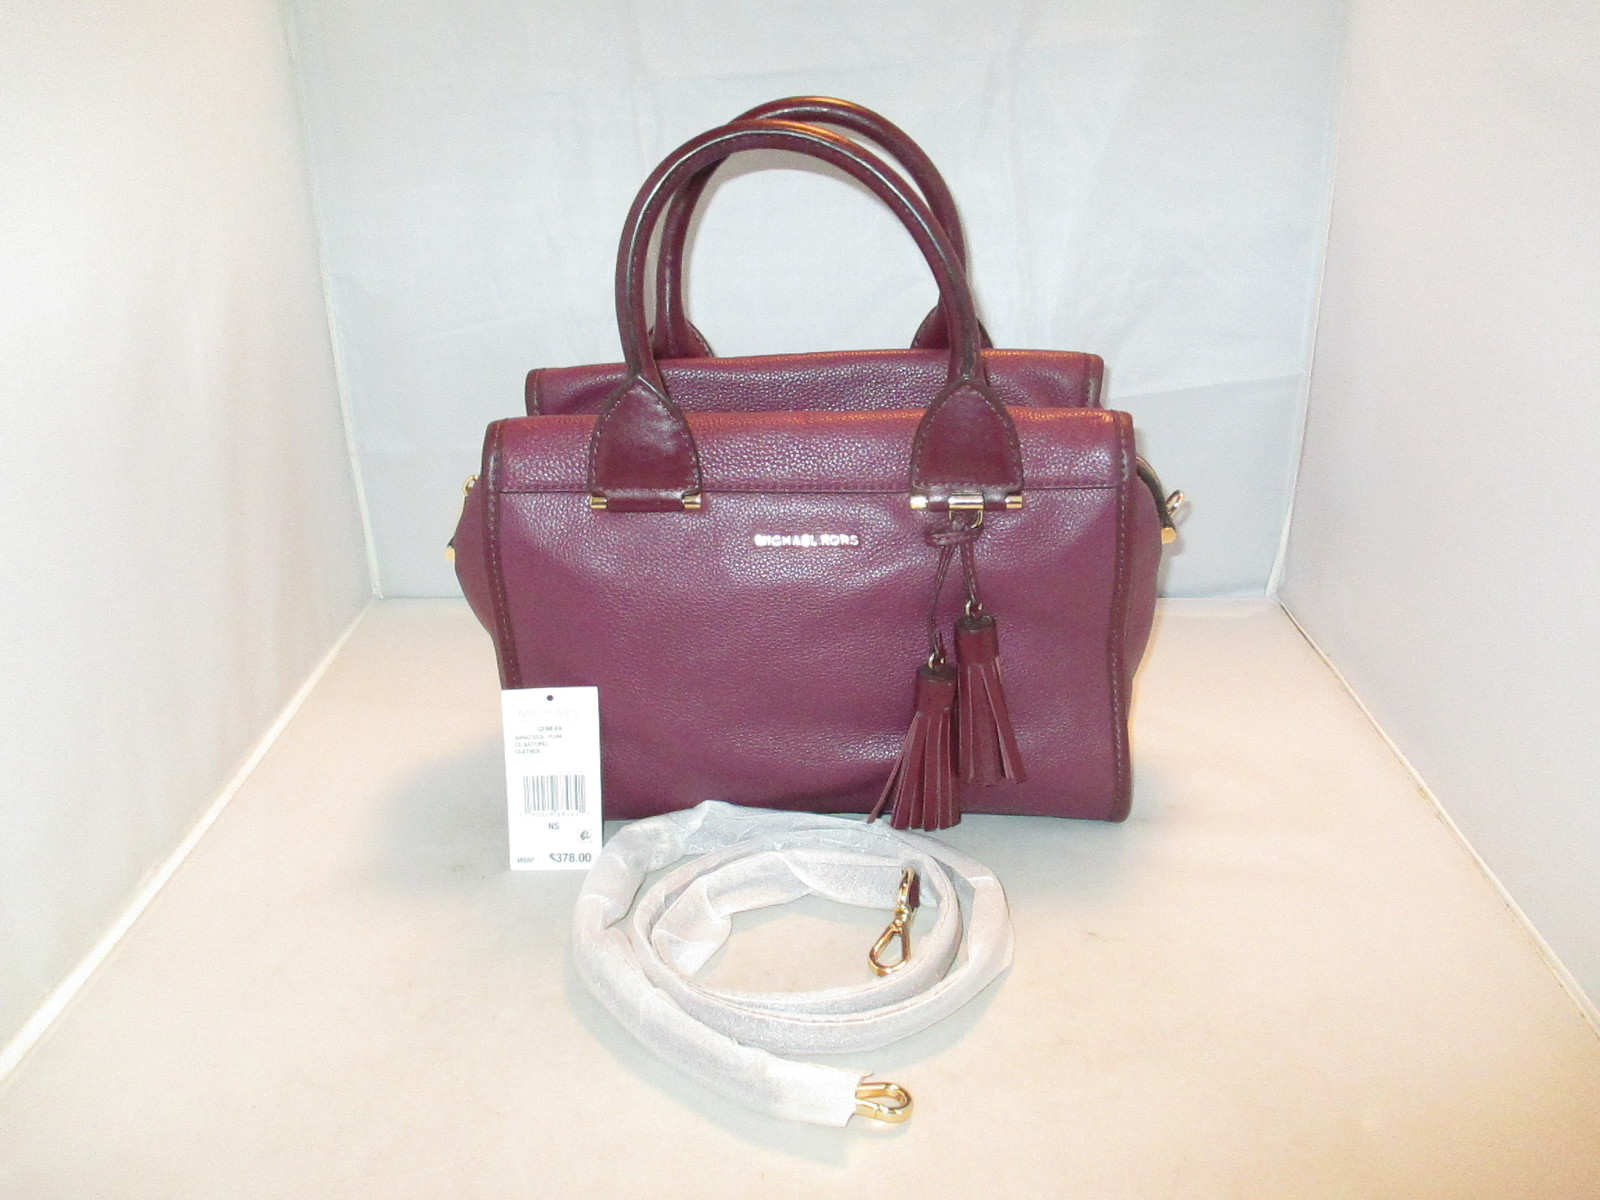 4adf2c43fce7 Img 6973. Img 6973. Michael Kors Geneva Large Leather Satchel, Shoulder Bag,  Tote, Cross-Body $378